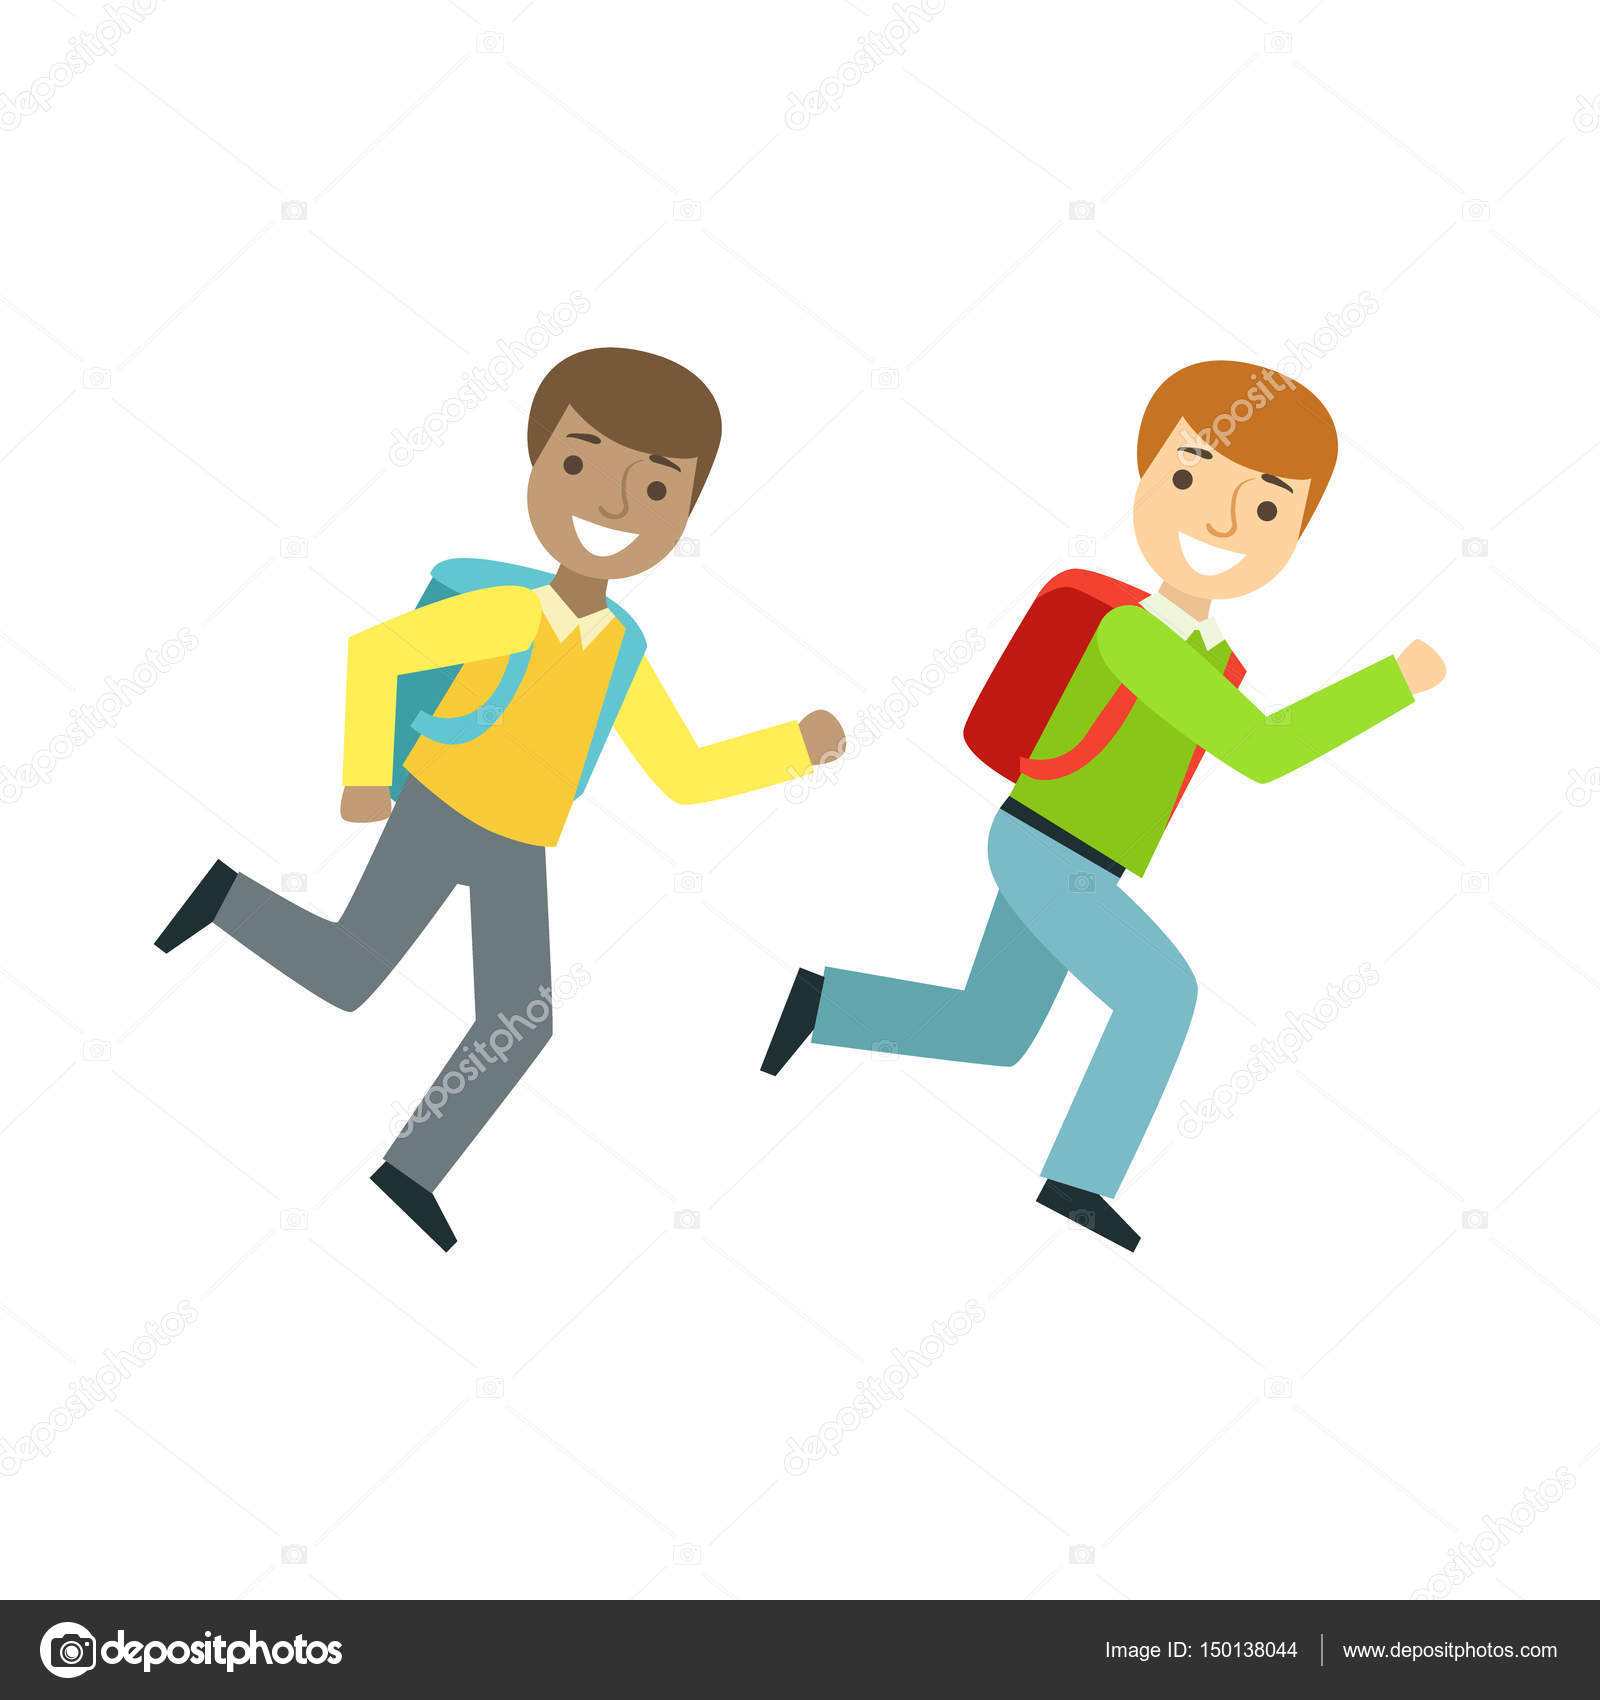 Two Boys Running To The Classroom Part Of School And Scholar Life Series Of Minimalistic Illustrations Vector Image By Topvectors Vector Stock 150138044